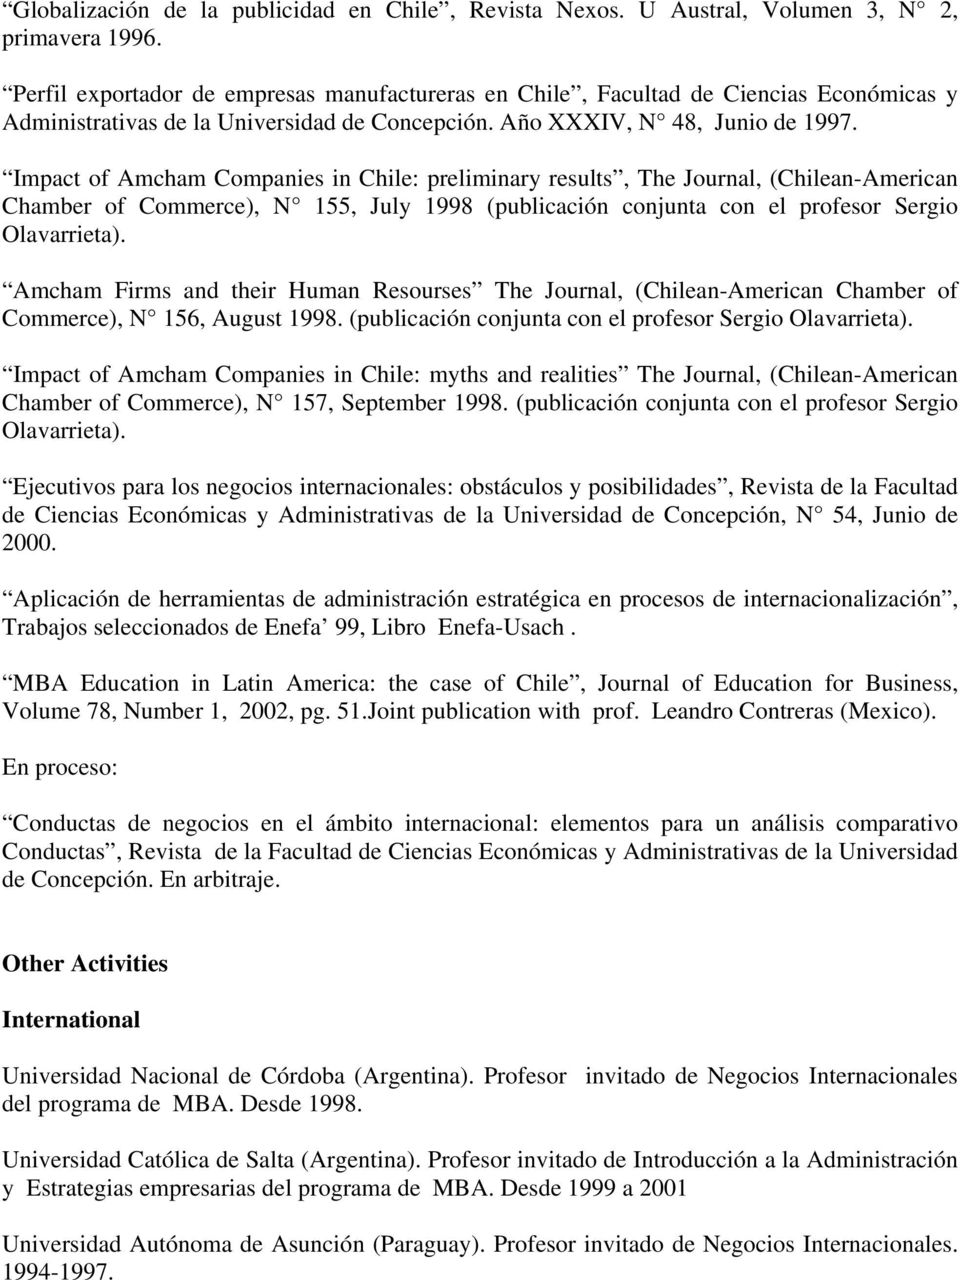 Impact of Amcham Companies in Chile: preliminary results, The Journal, (Chilean-American Chamber of Commerce), N 155, July 1998 (publicación conjunta con el profesor Sergio Olavarrieta).